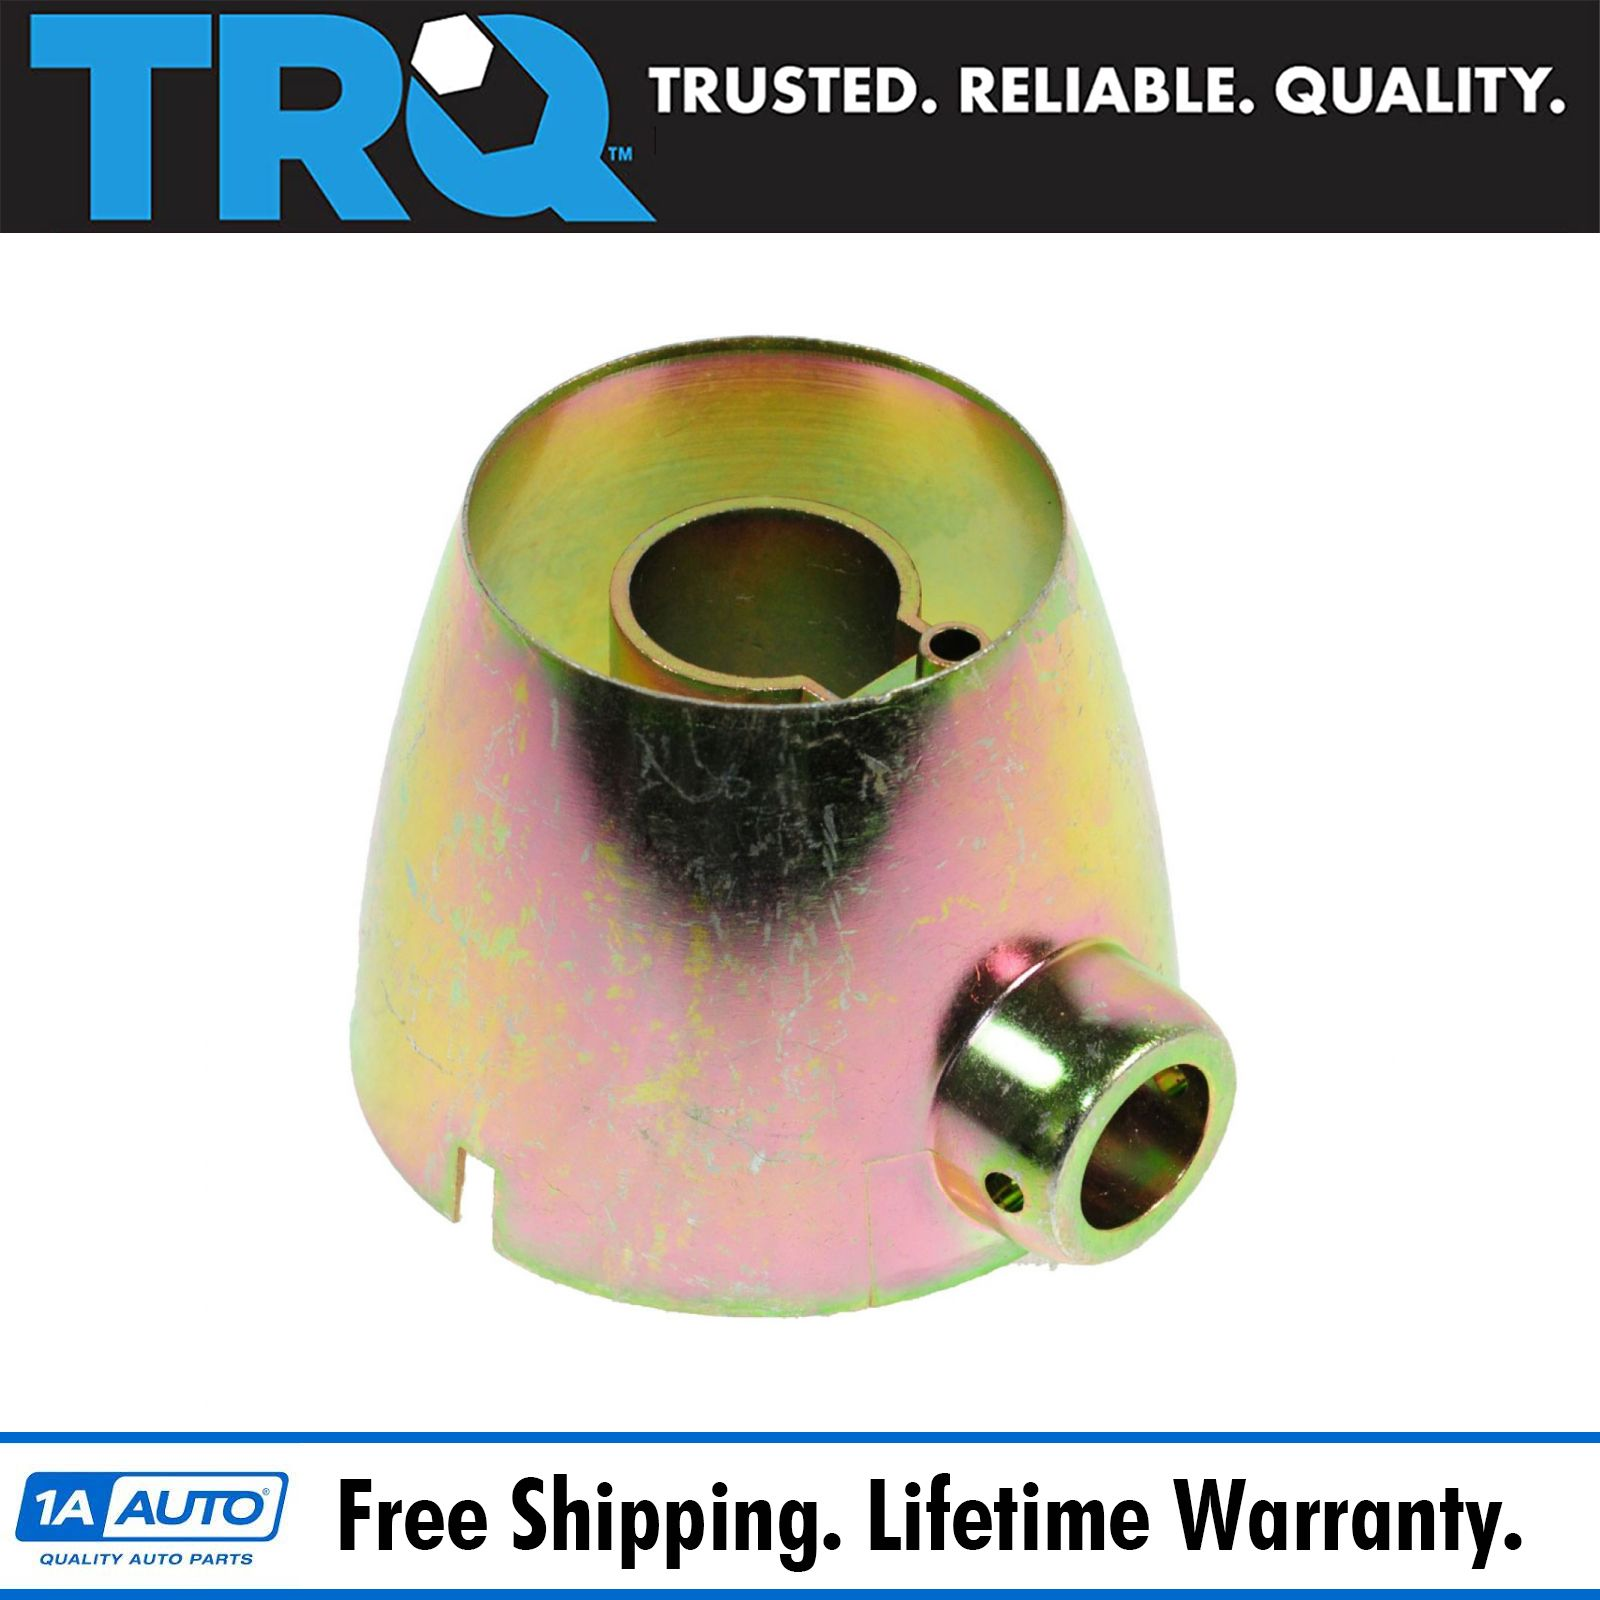 Toyota Collar Partnumber 9038921003: Shifter Steering Column Collar Repair Kit Automatic Trans